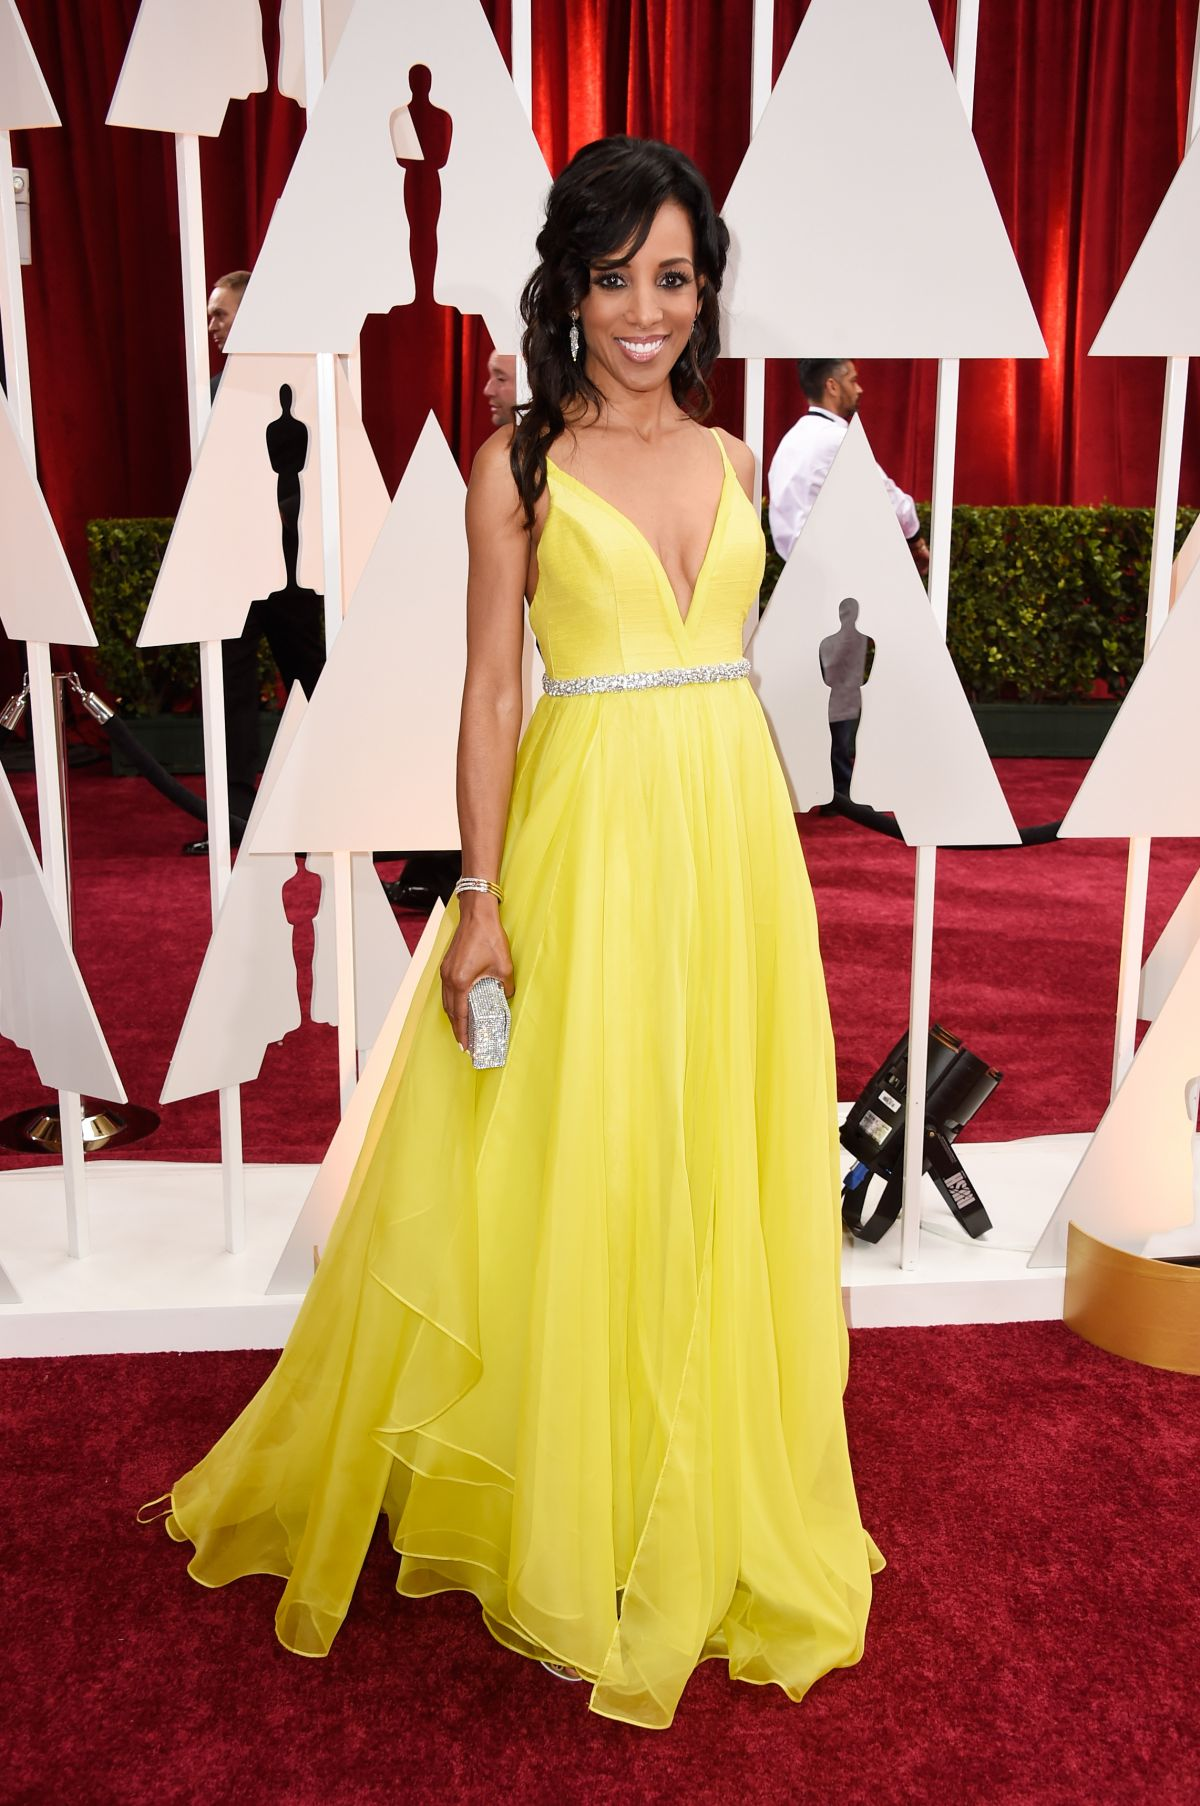 SHAUN ROBINSON at 87th Annual Academy Awardsat the Dolby Theatre in Hollywood